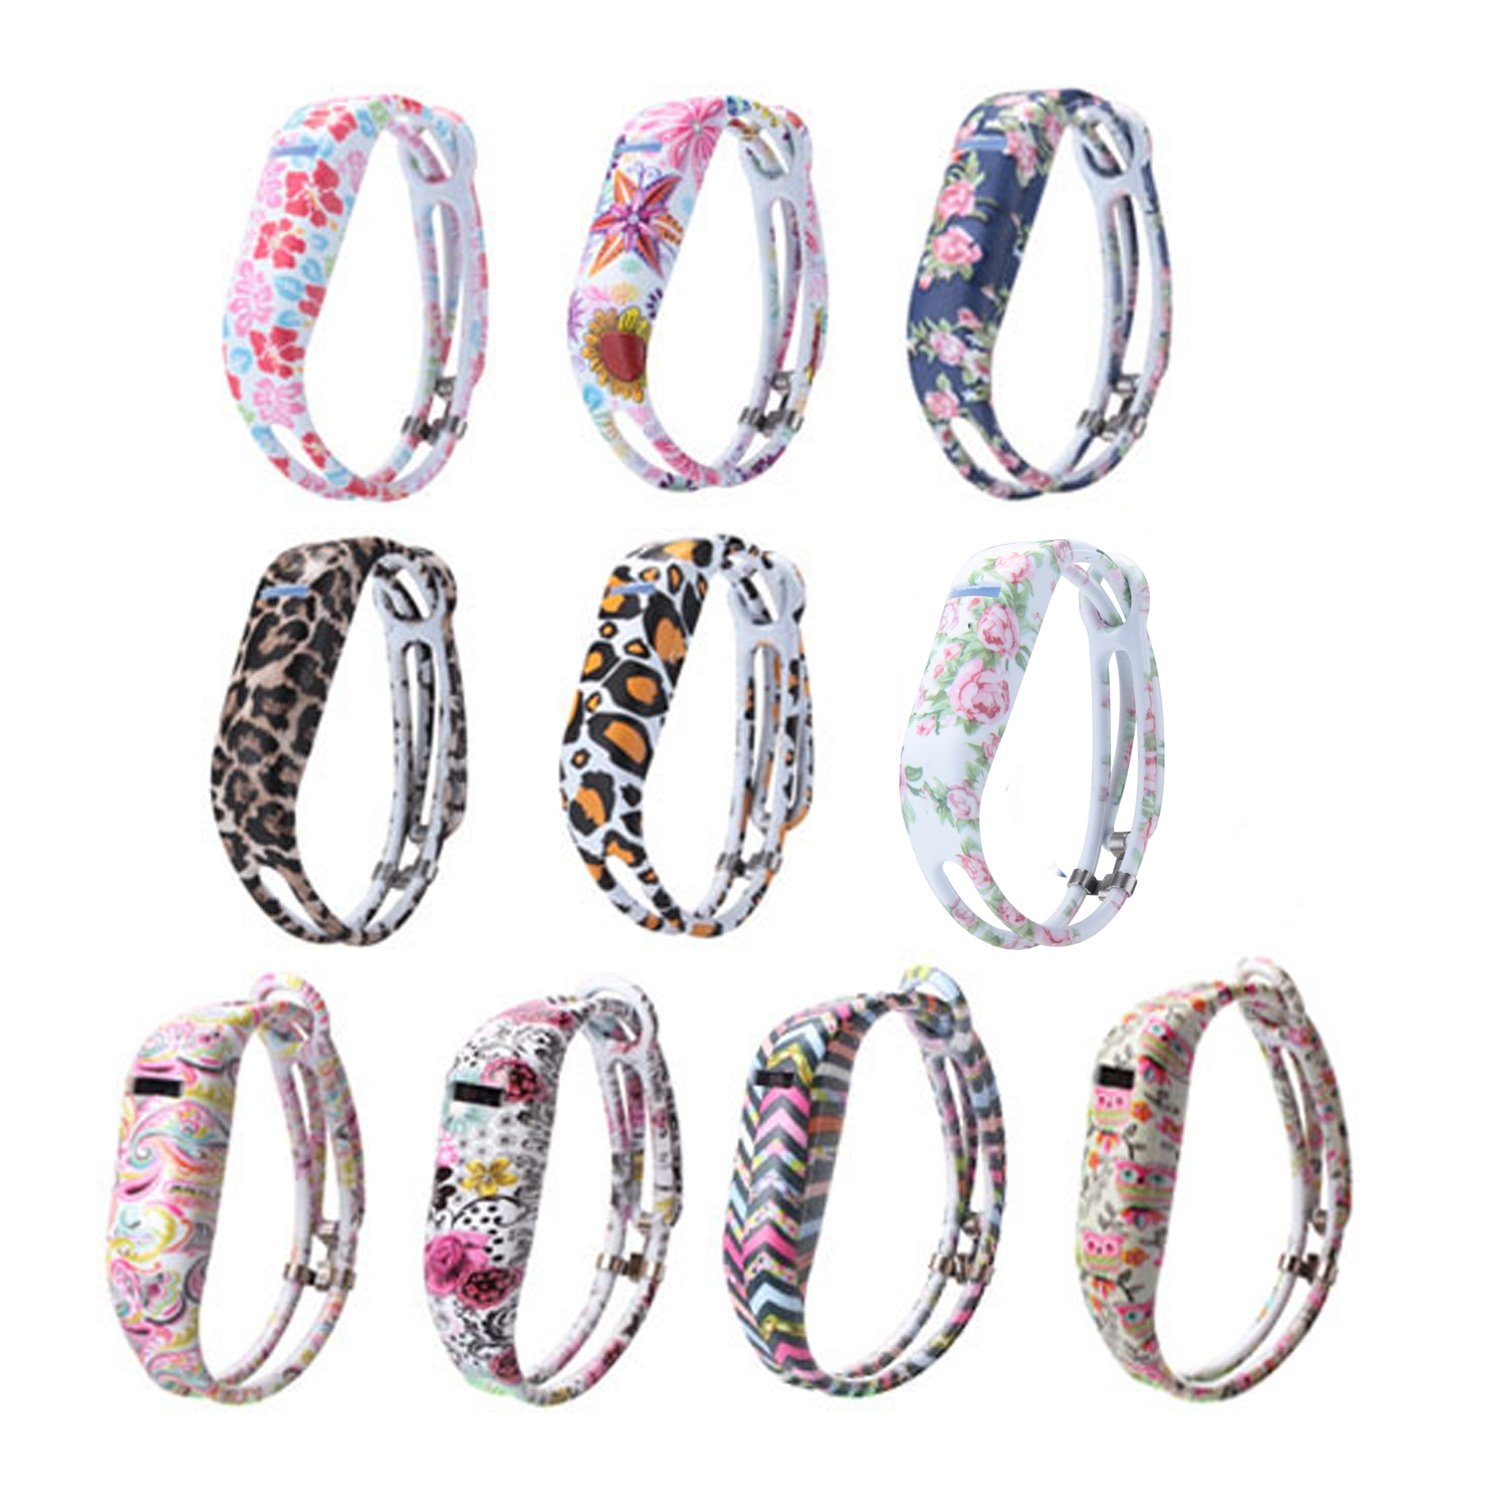 I-SMILE for Fitbit Flex, Fashion Silicone Wristband Accessory/Wireless  Activity Bracelet Sport Arm Band for Fitbit Flex